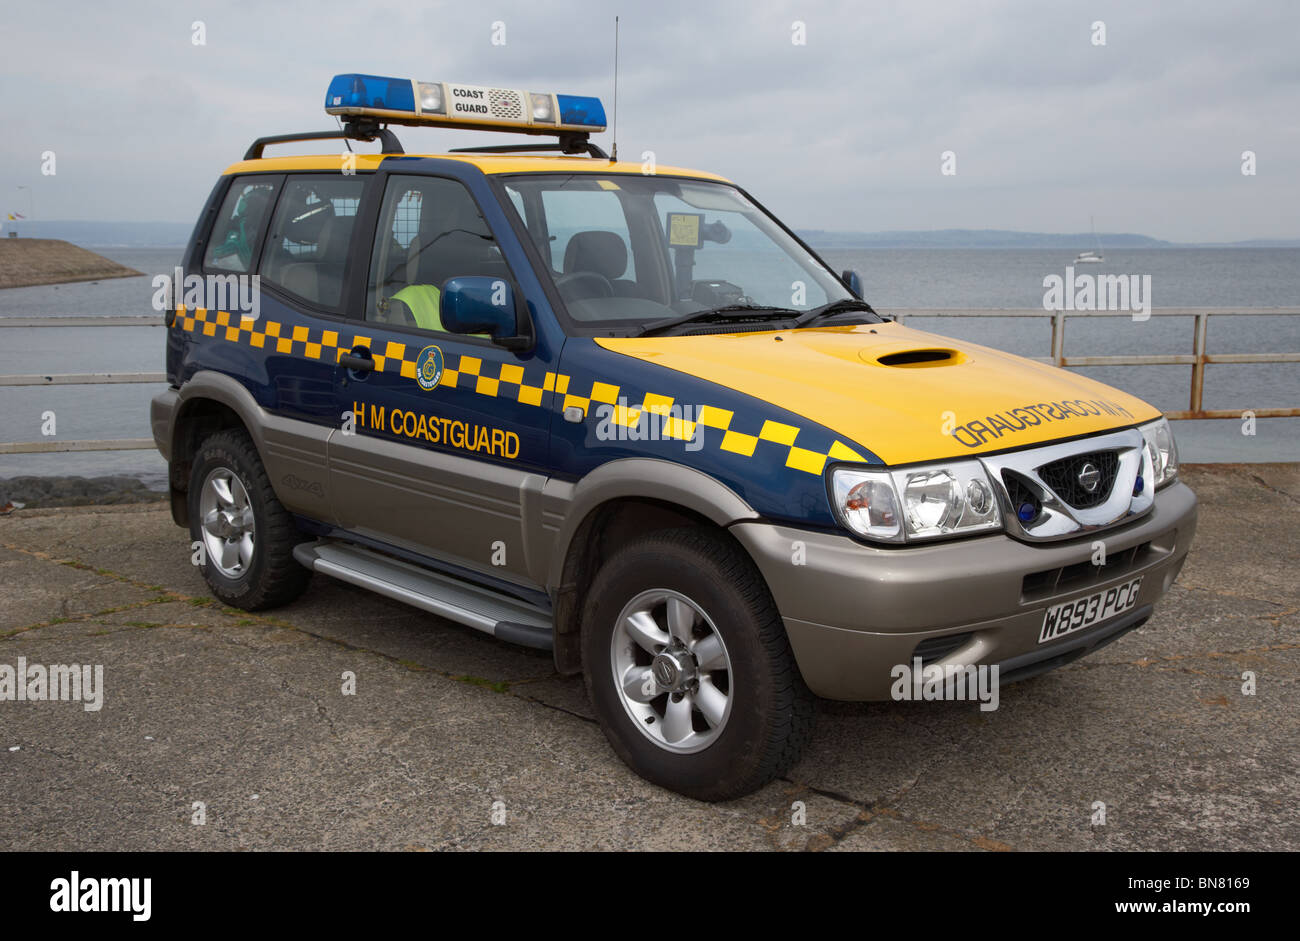 hm coastguard search and rescue 4x4 vehicle parked on a